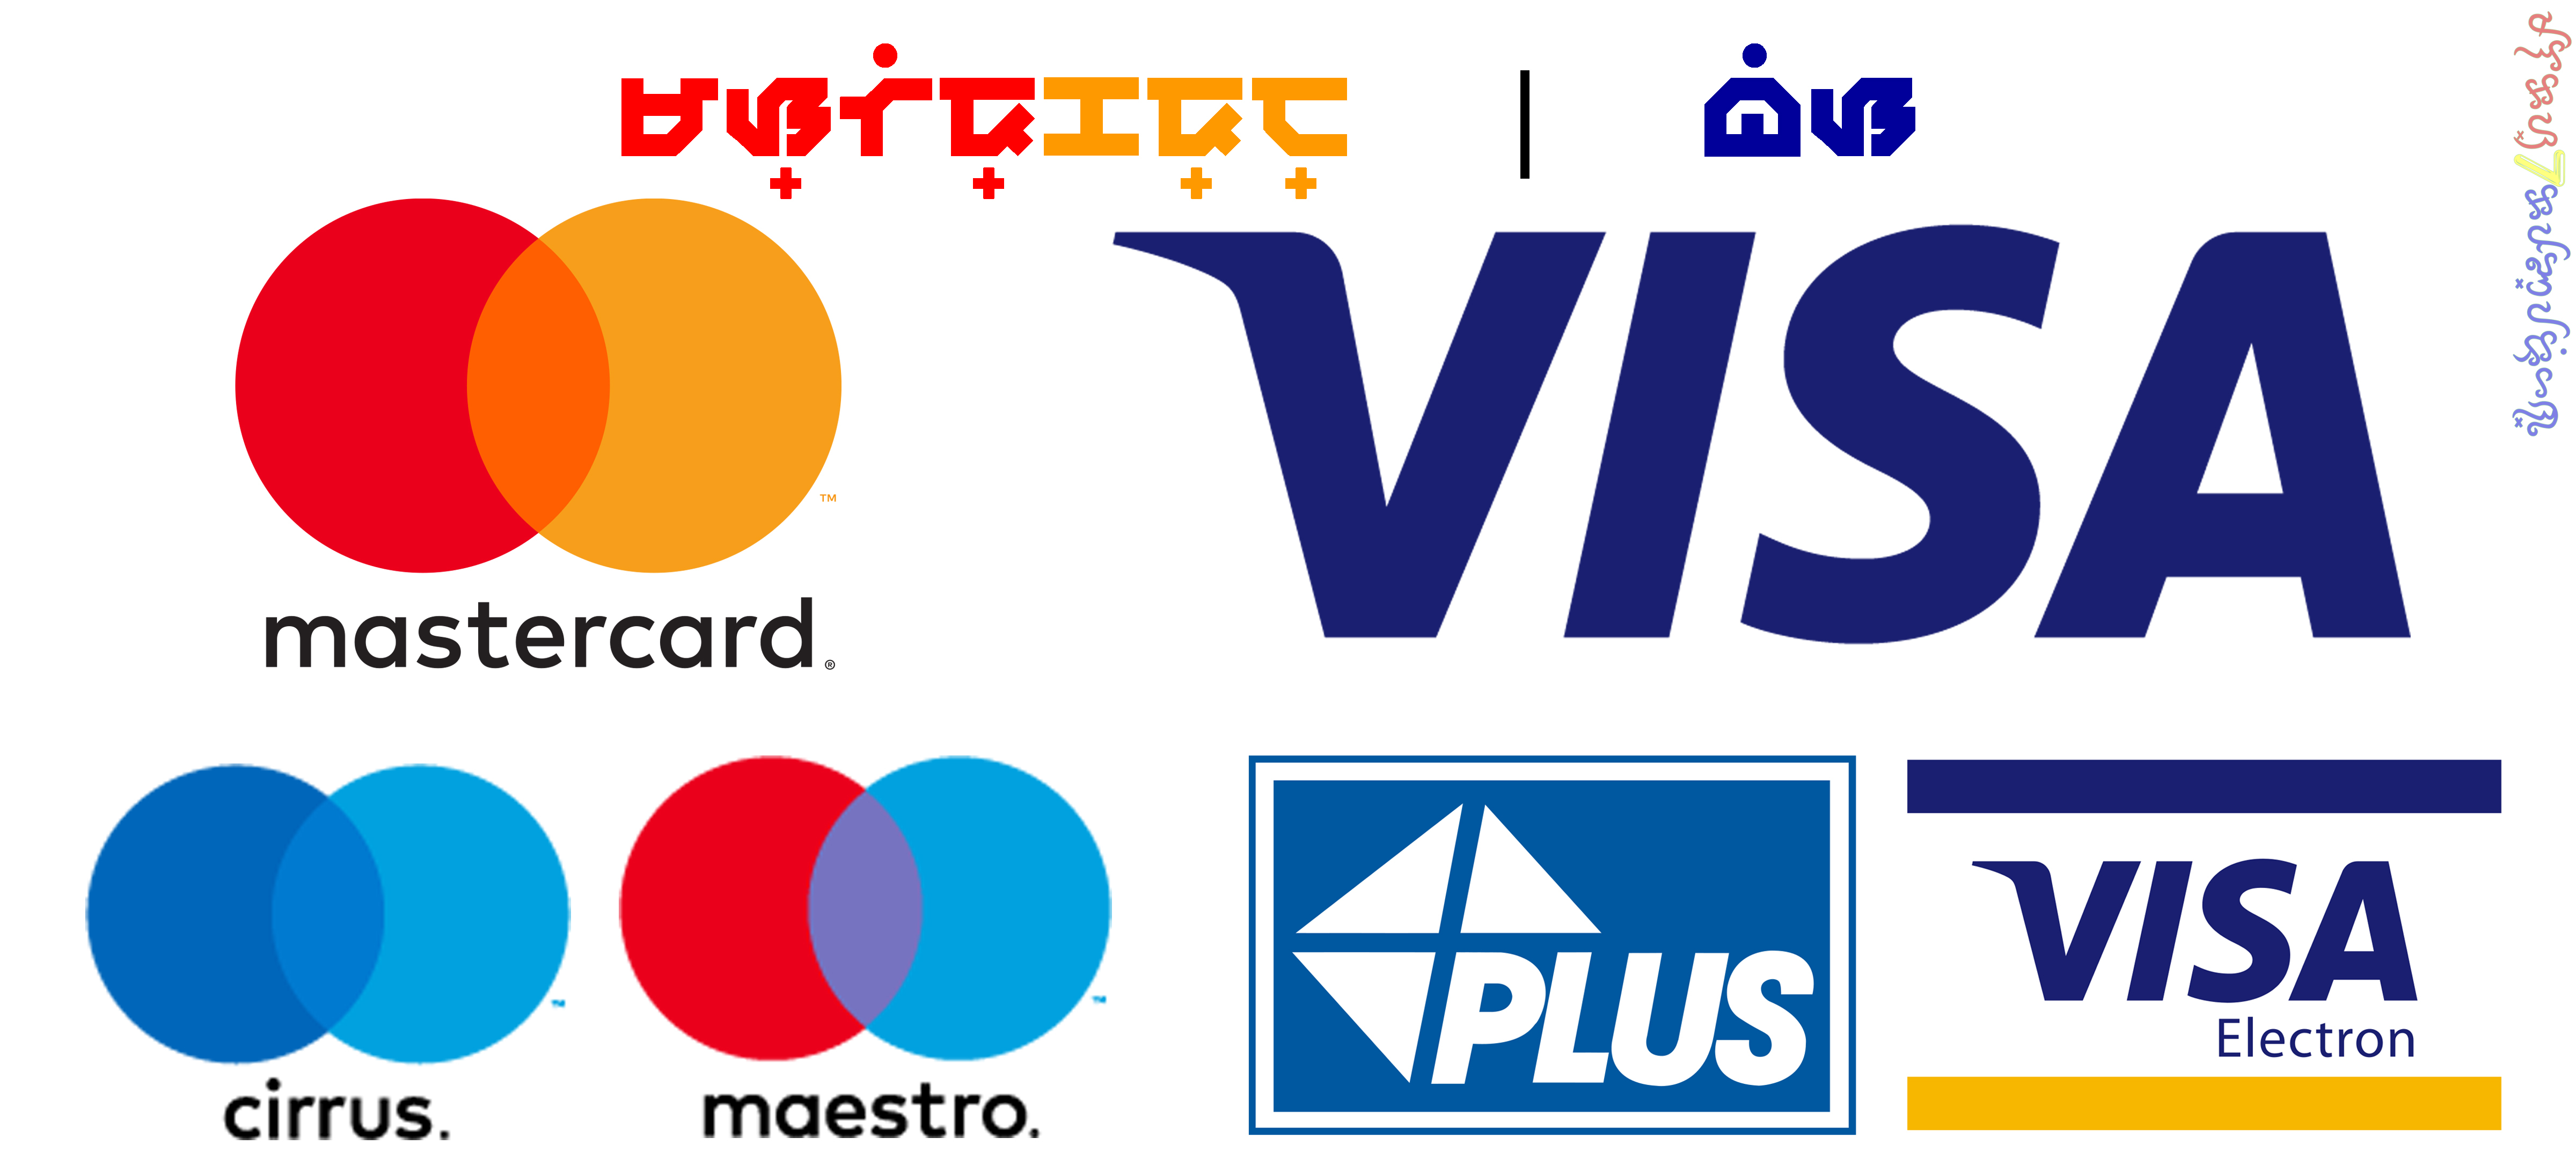 MasterCard and Visa (Cards and Other Financial Products